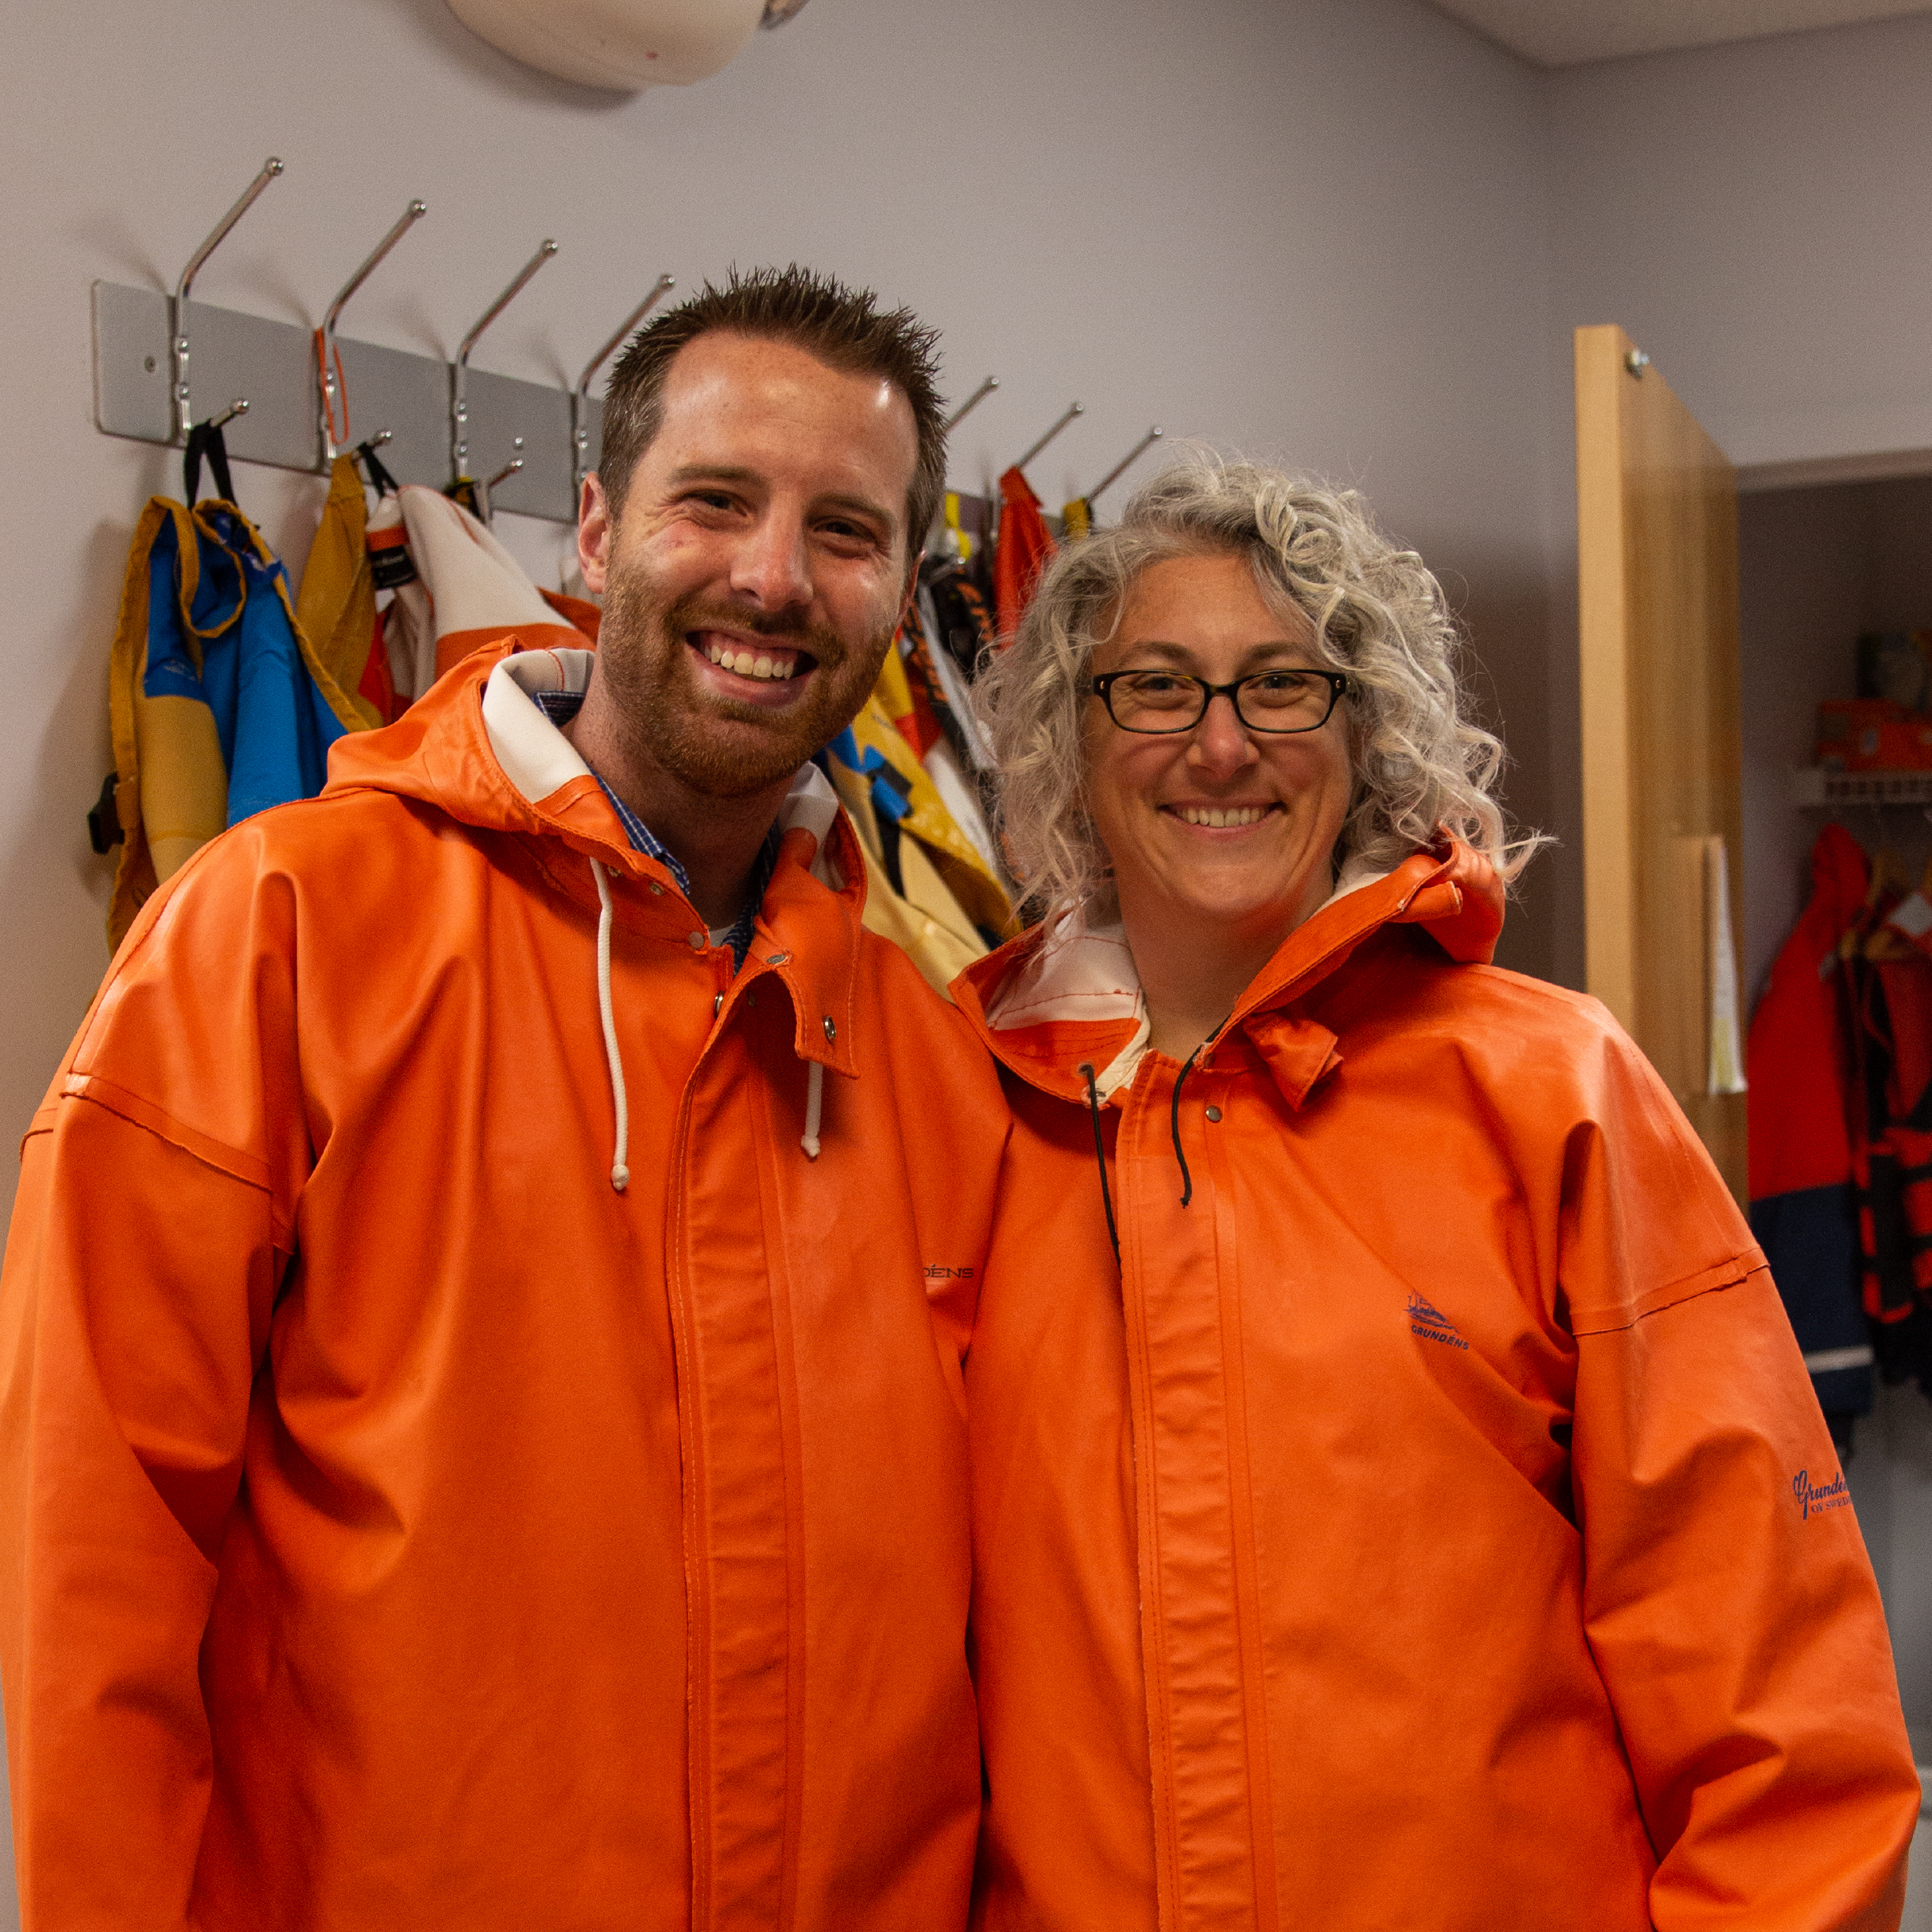 Breeding Insight team members don protective clothing as they prepare to enter a salmon breeding facility.